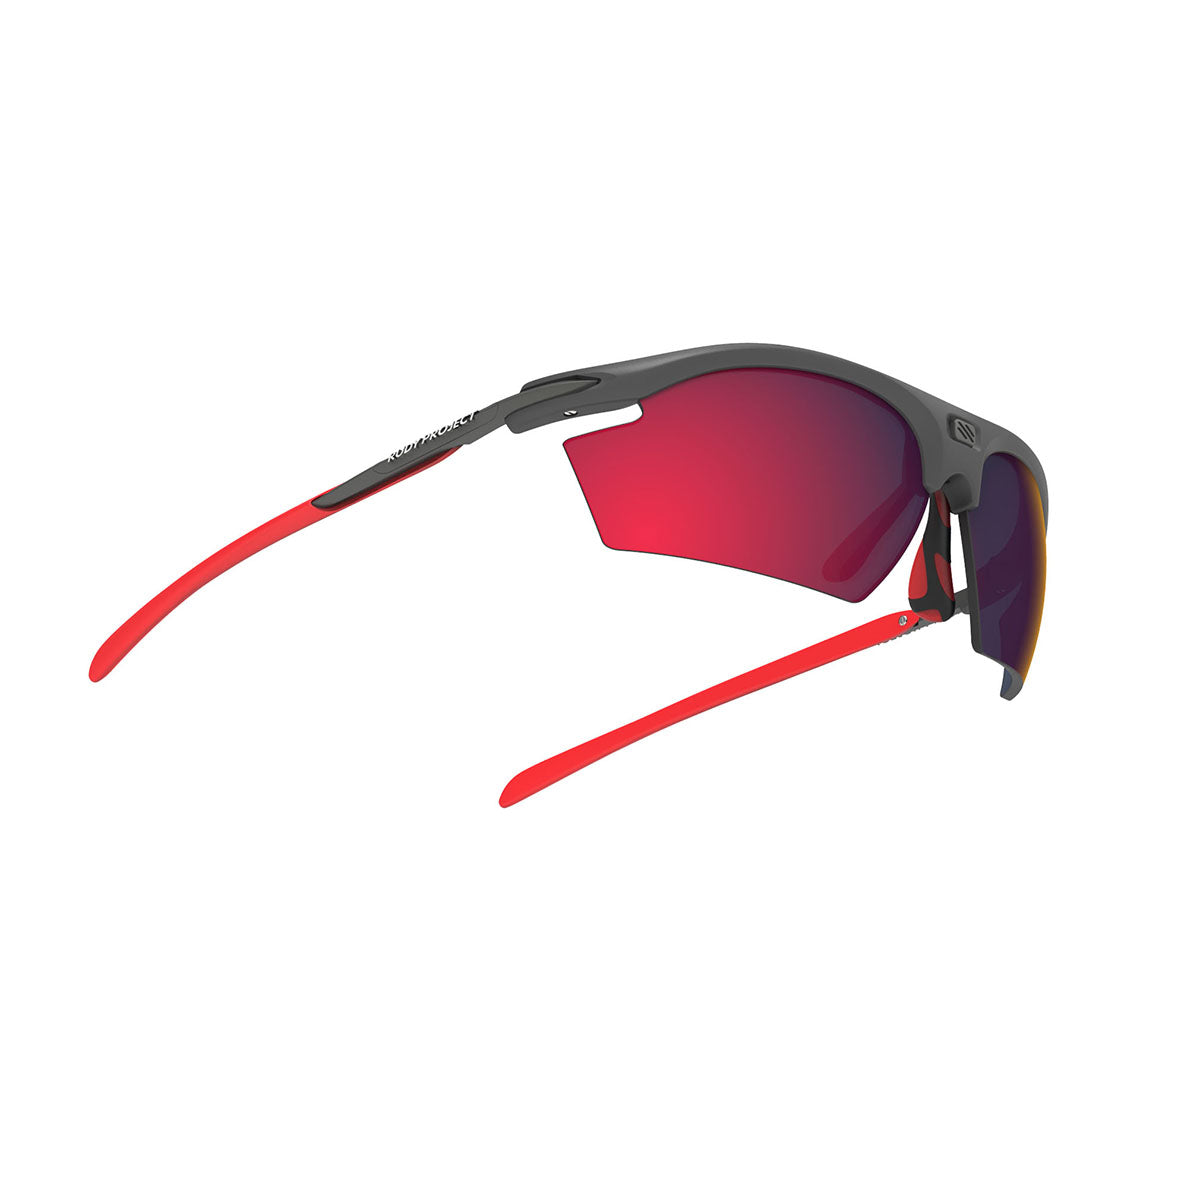 Rudy Project - Rydon - frame color: Graphite Multicolor Red - lens color: Multilaser Red - photo angle: Bottom Front Angle Variant Hover Image